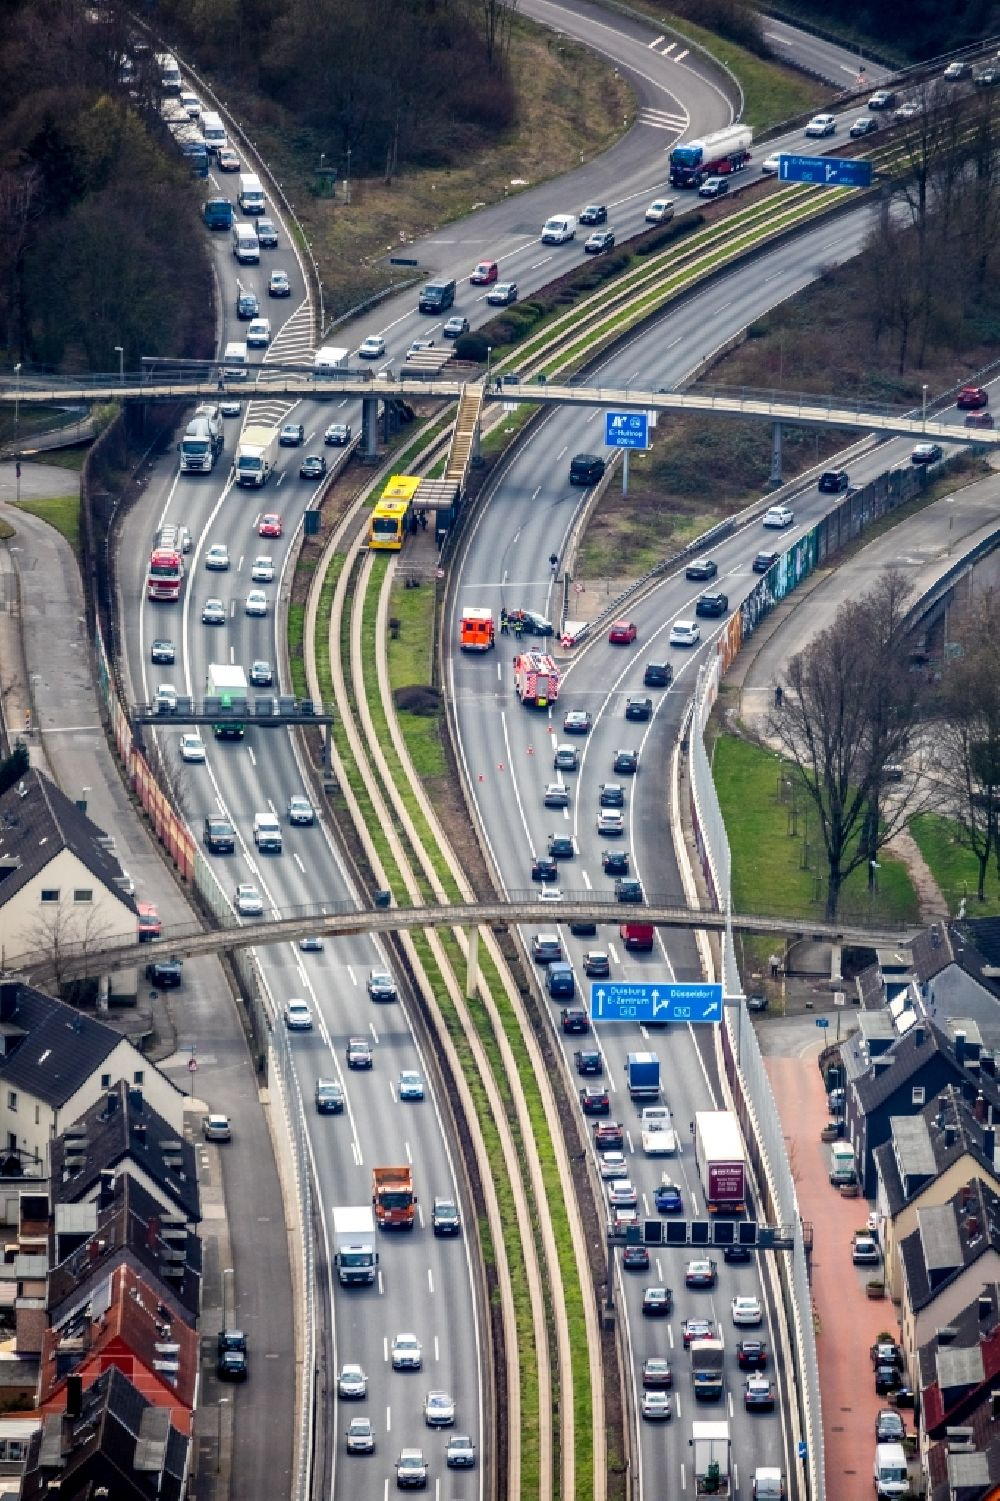 Essen from the bird's eye view: Highway congestion along the route of the lanes BAB A40 - A52 in the district Frillendorf in Essen in the state North Rhine-Westphalia, Germany